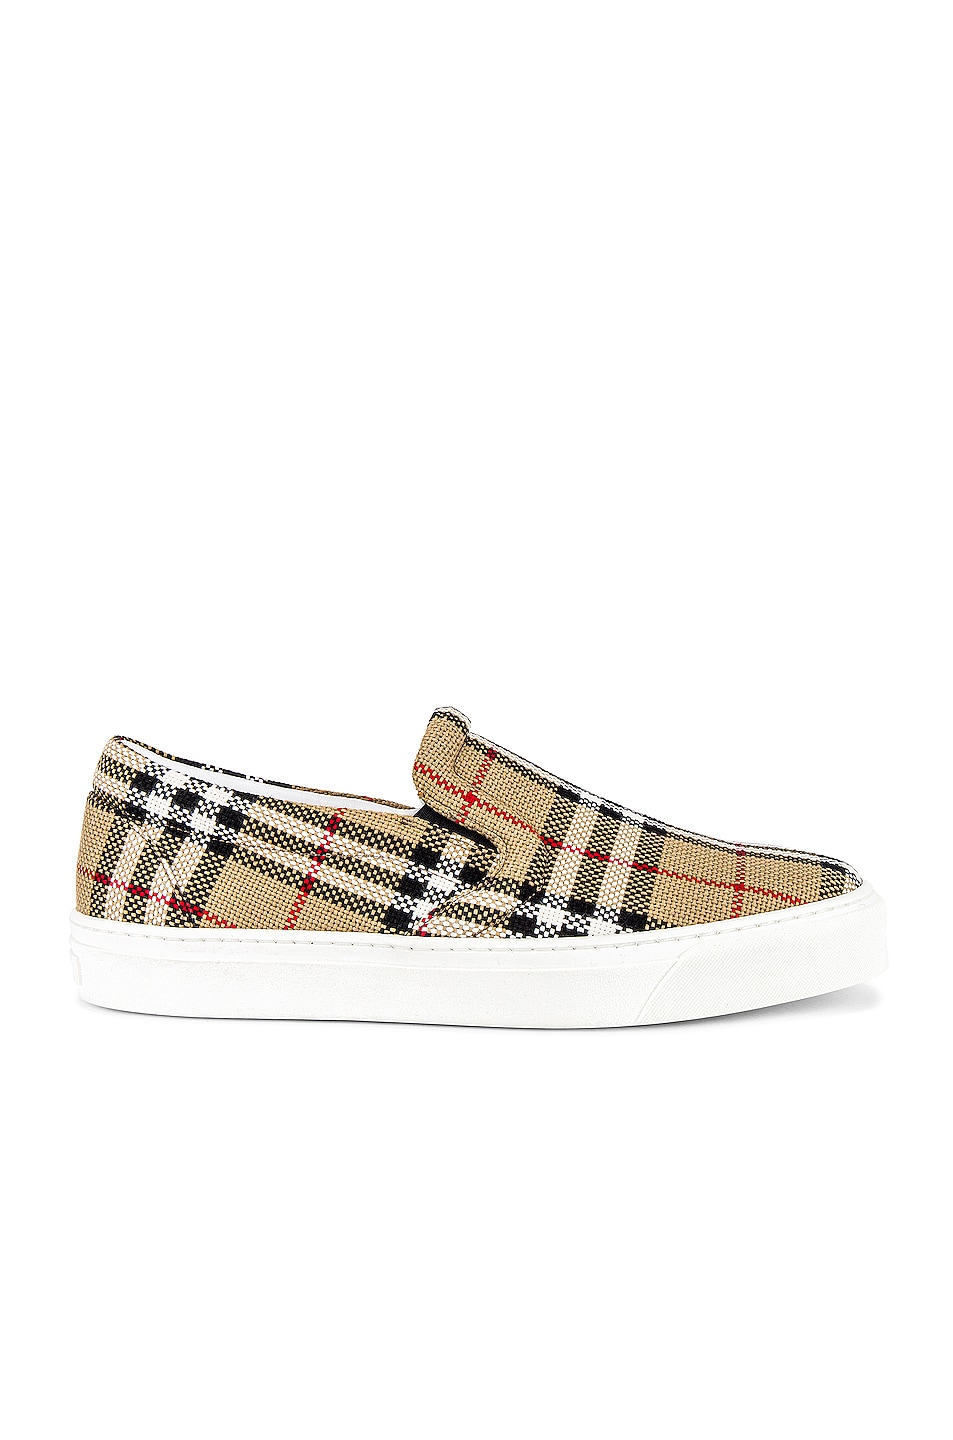 Image 1 of Burberry Thompson M Check Slip On Sneaker in Archive Beige